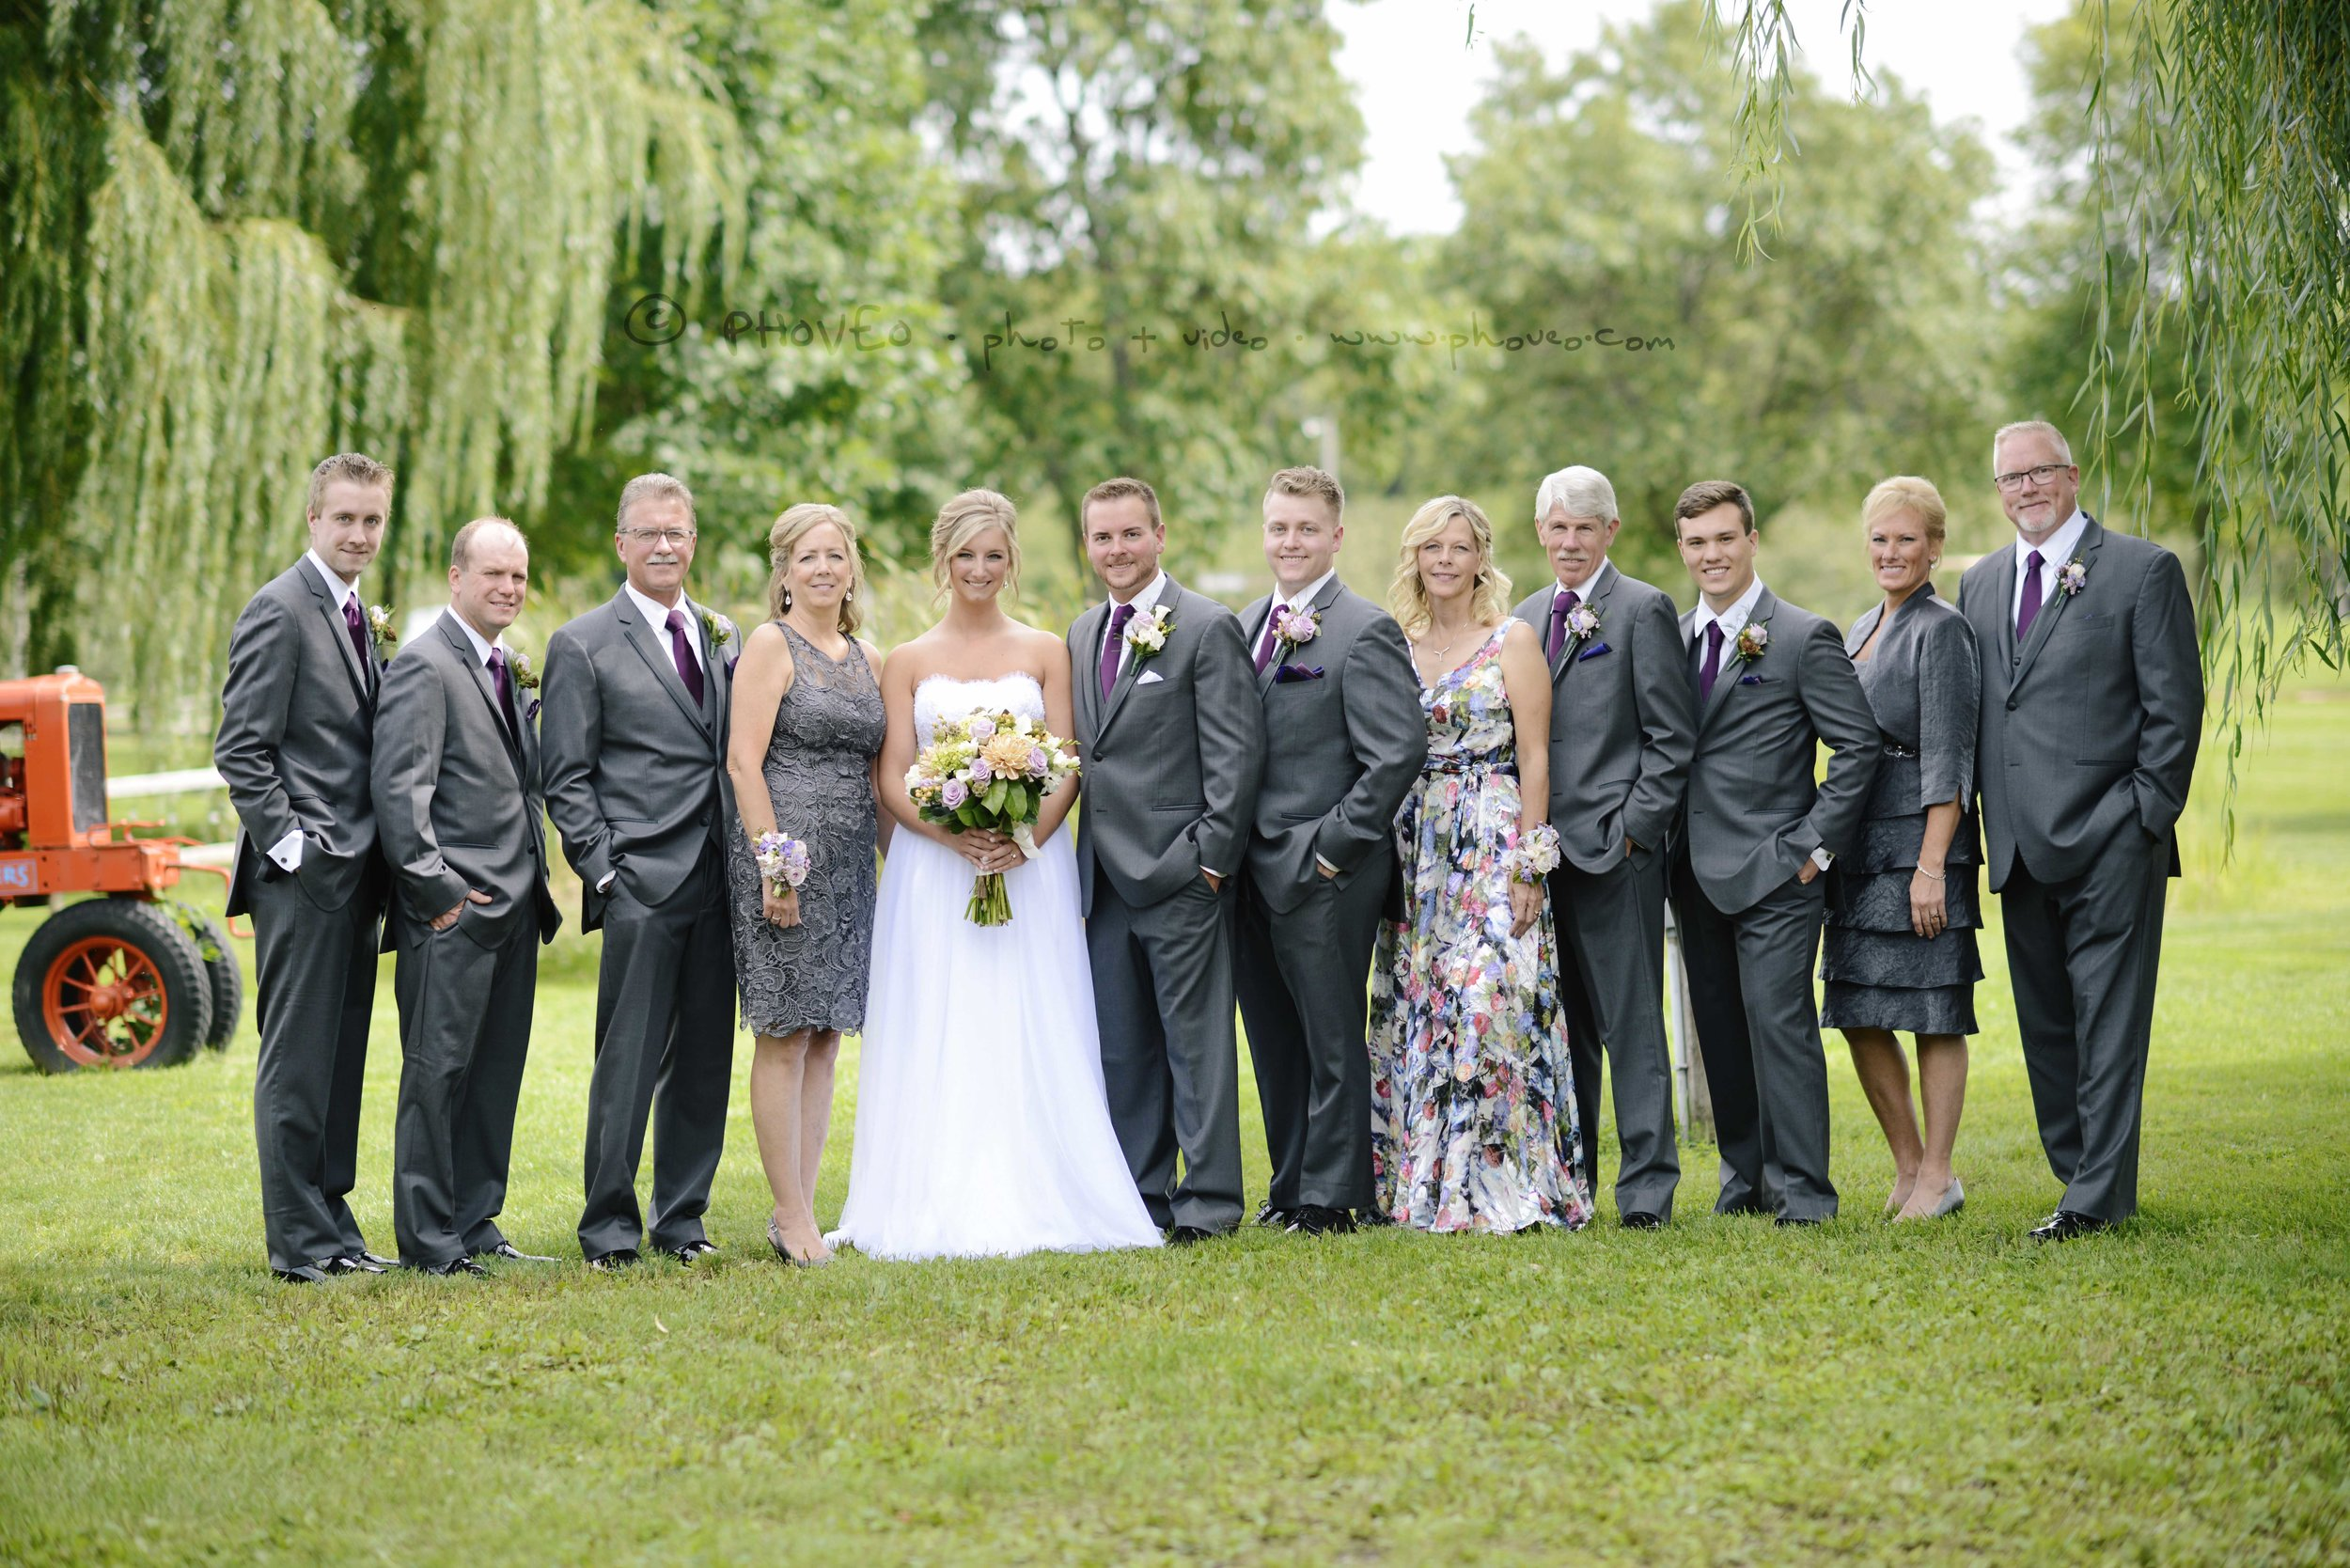 WM_20160826_Katelyn+Tony_142.jpg